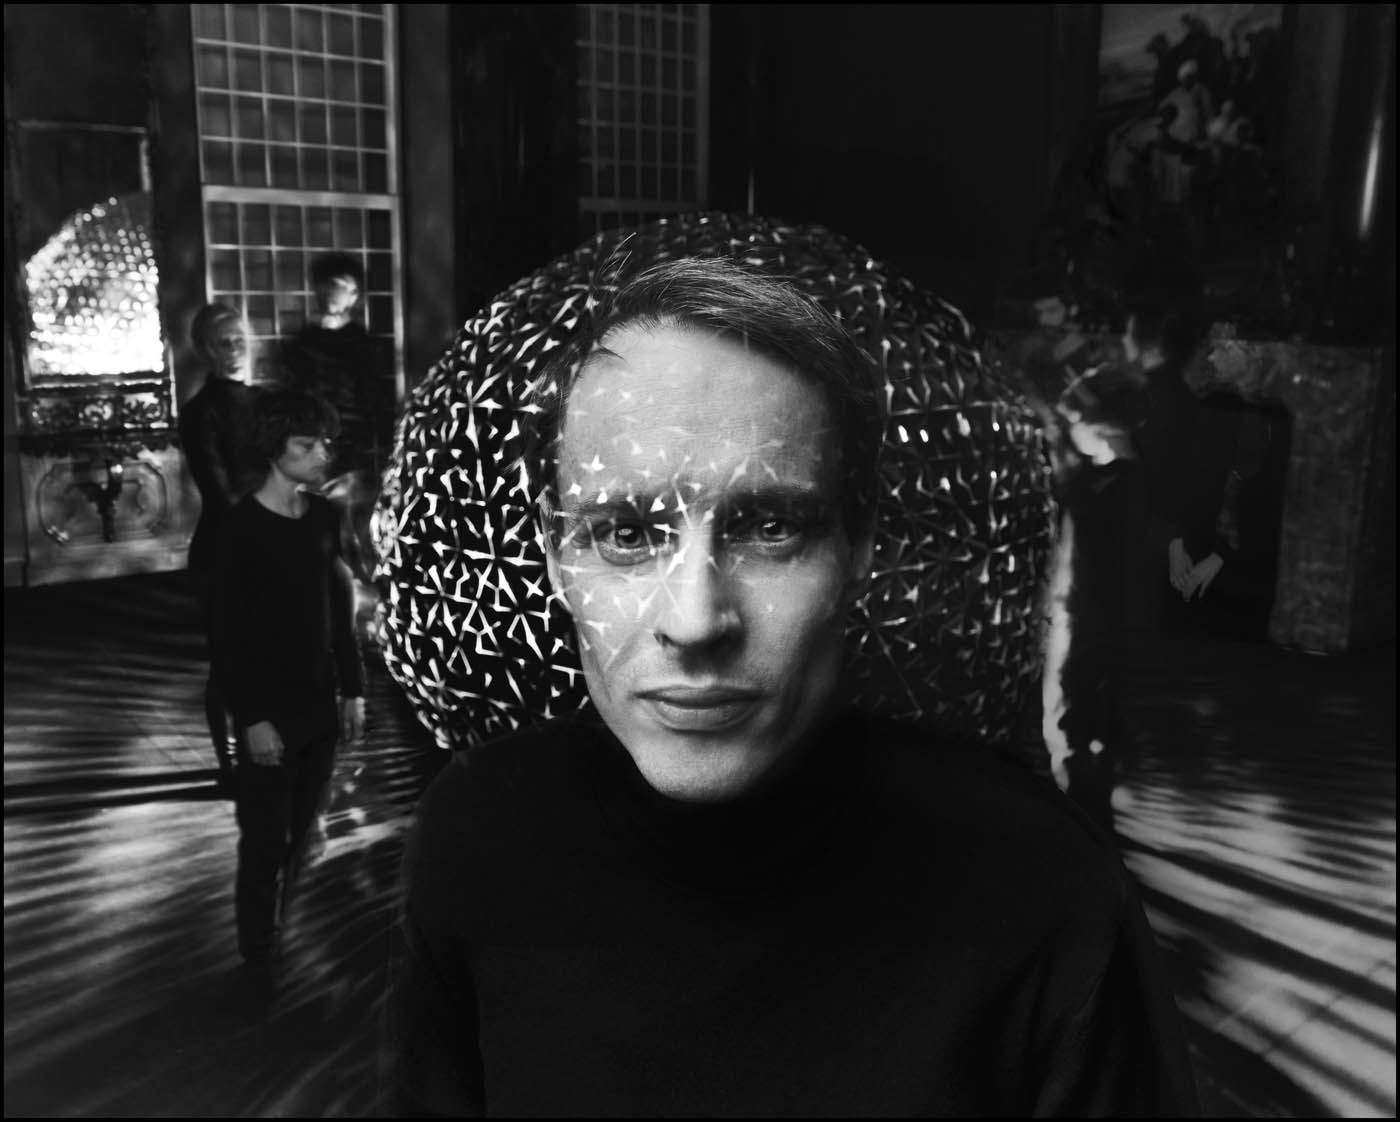 Designing the Future- An introduction to Daan Roosegaarde